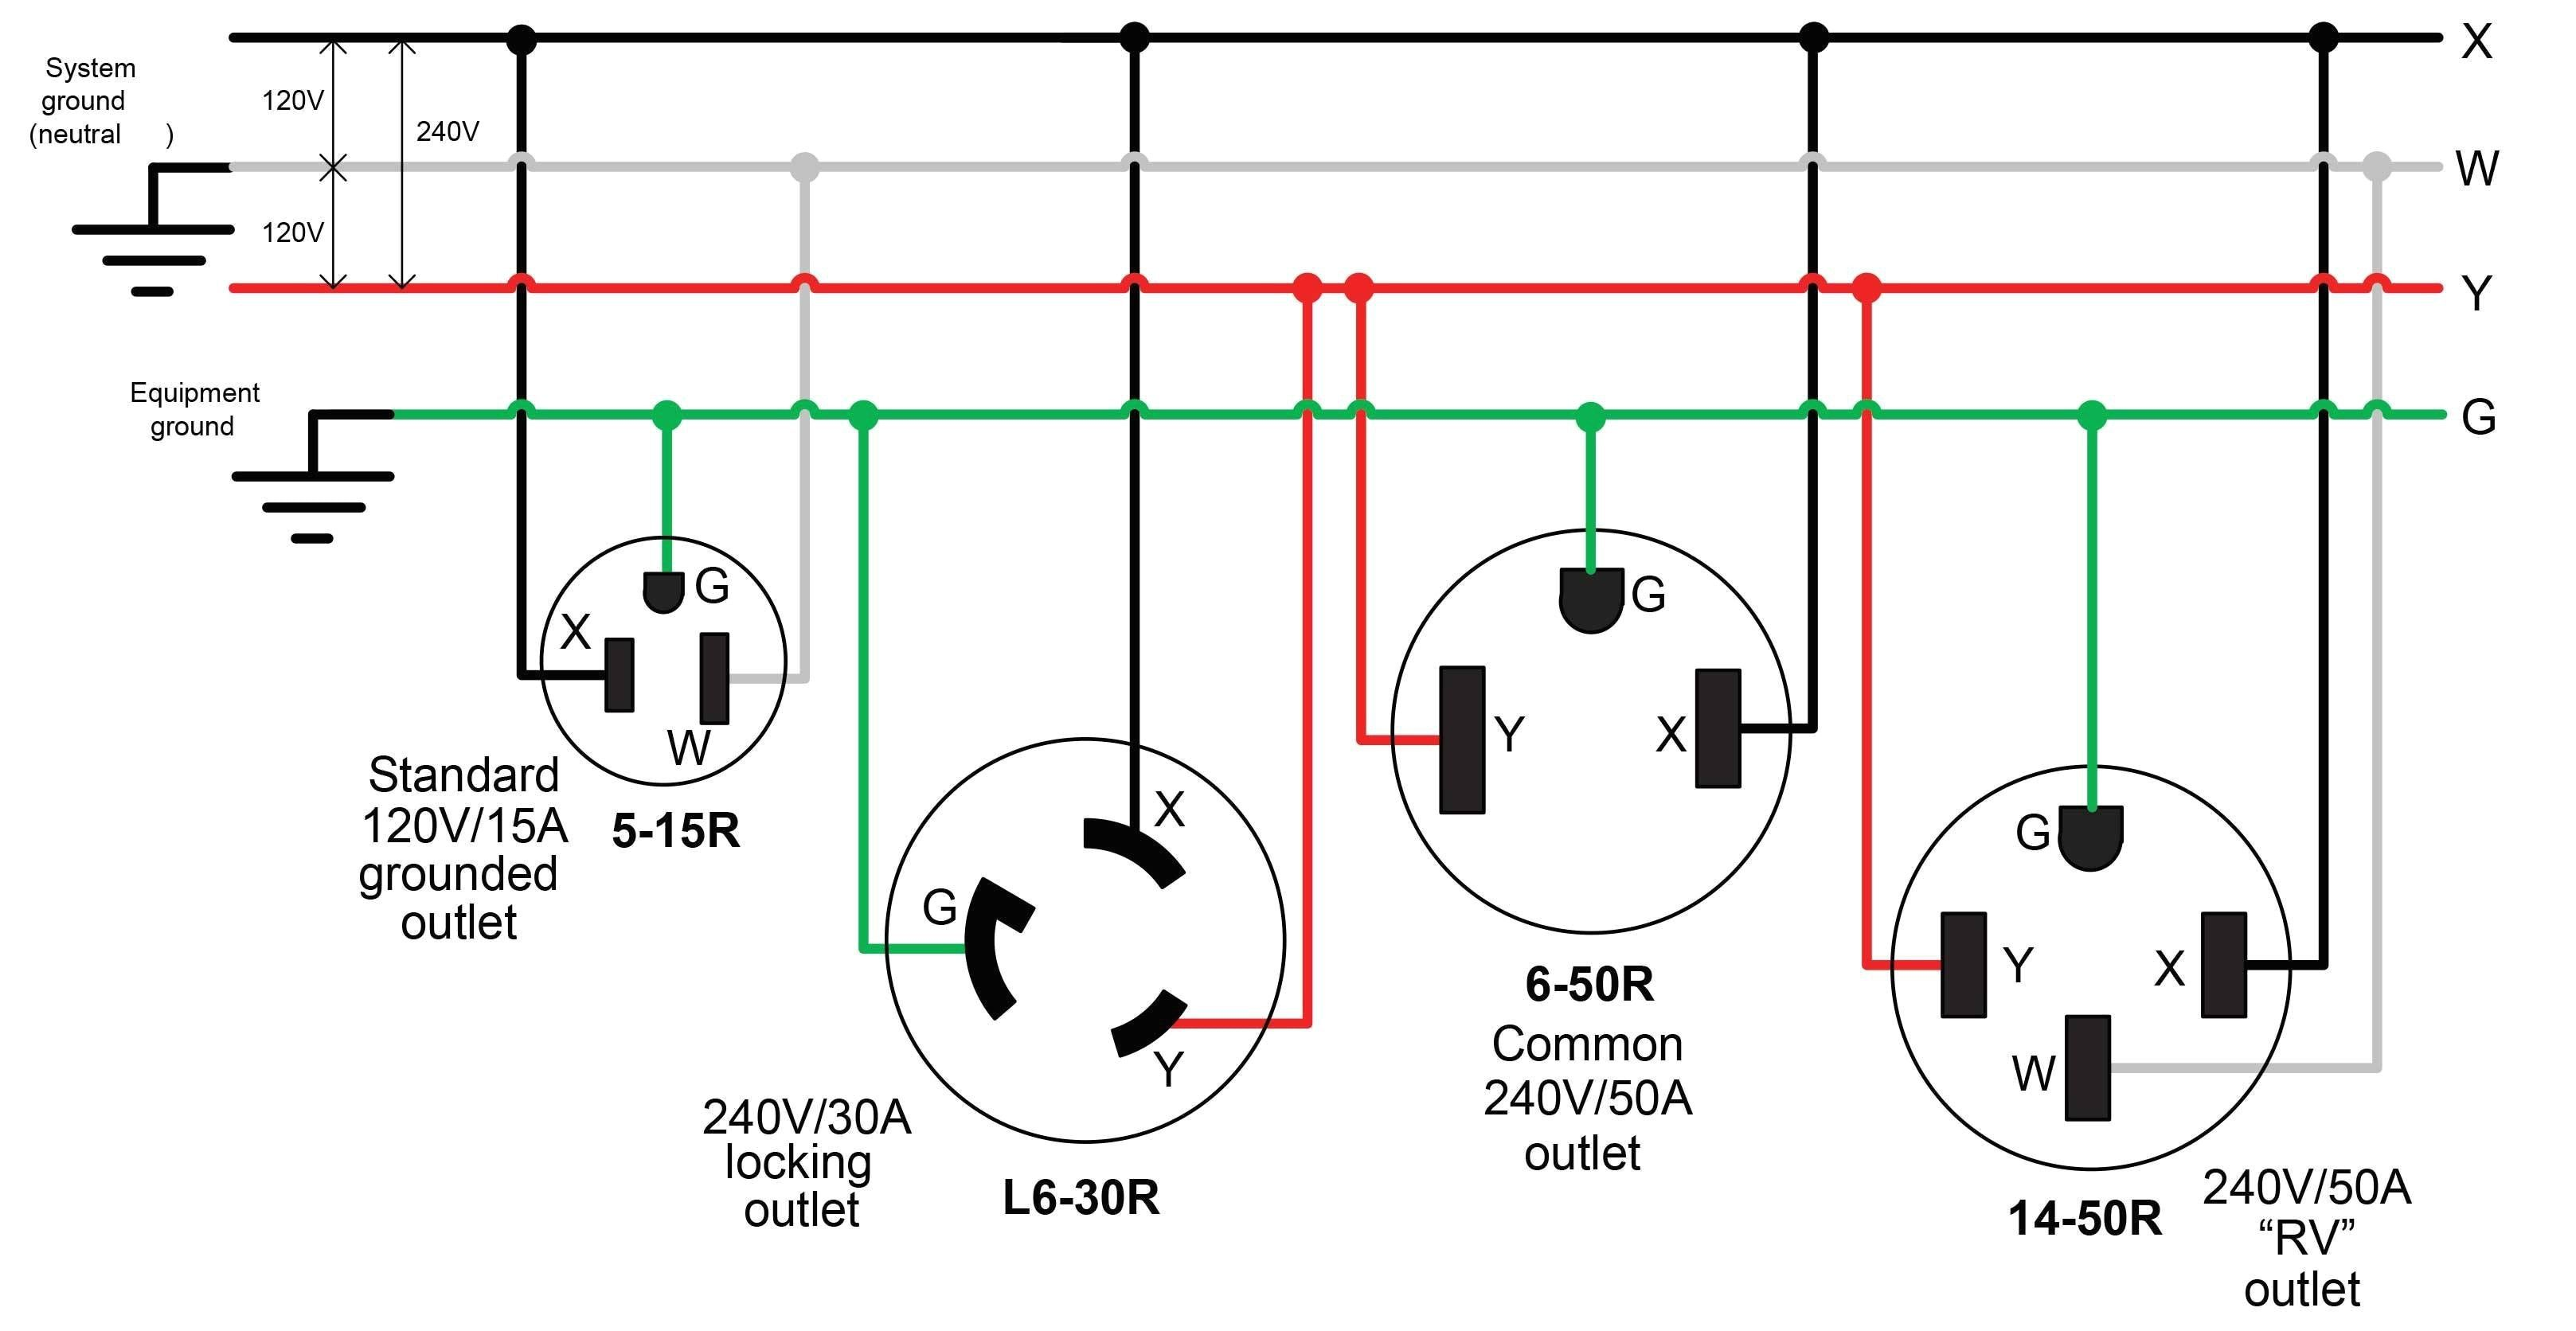 Twist Lock 4 Prong Outlet Wiring Diagram 4 wire 4 prong ... on 4 prong generator wiring diagram, ground fault circuit breaker wiring diagram, electric oven wiring diagram, 3 prong switch diagram, 3 phase 4 wire plug diagram, primary single phase capacitor wiring diagram, electrical socket wiring diagram, dryer wiring diagram, 3 wire range outlet diagram, 3 phase switch wiring diagram, electrical plug diagram, 3 prong rocker switch wiring, 3 prong power diagram, 240 volt 4 wire wiring diagram, 3-pin flasher relay wiring diagram, 3 wire switch wiring diagram, cat 3 wiring diagram, outlet wiring diagram, wall socket wiring diagram, light switch wiring diagram,